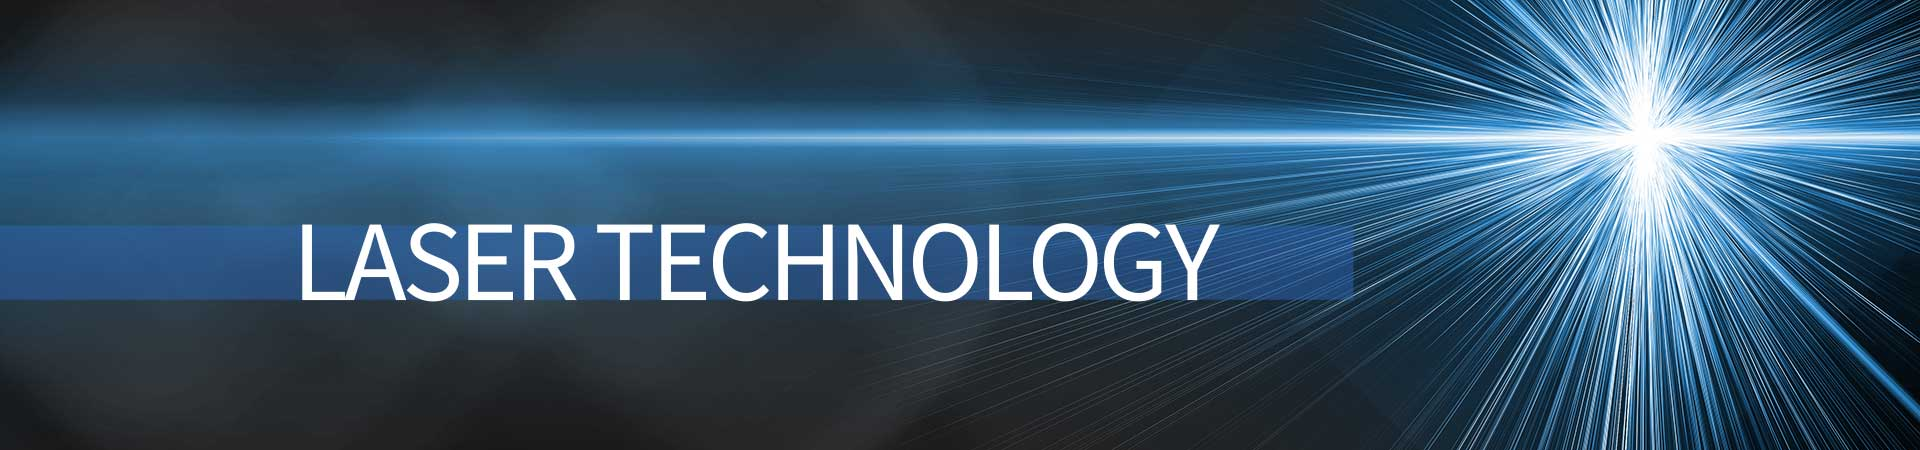 Laser Technology Schober Specializes In The Development